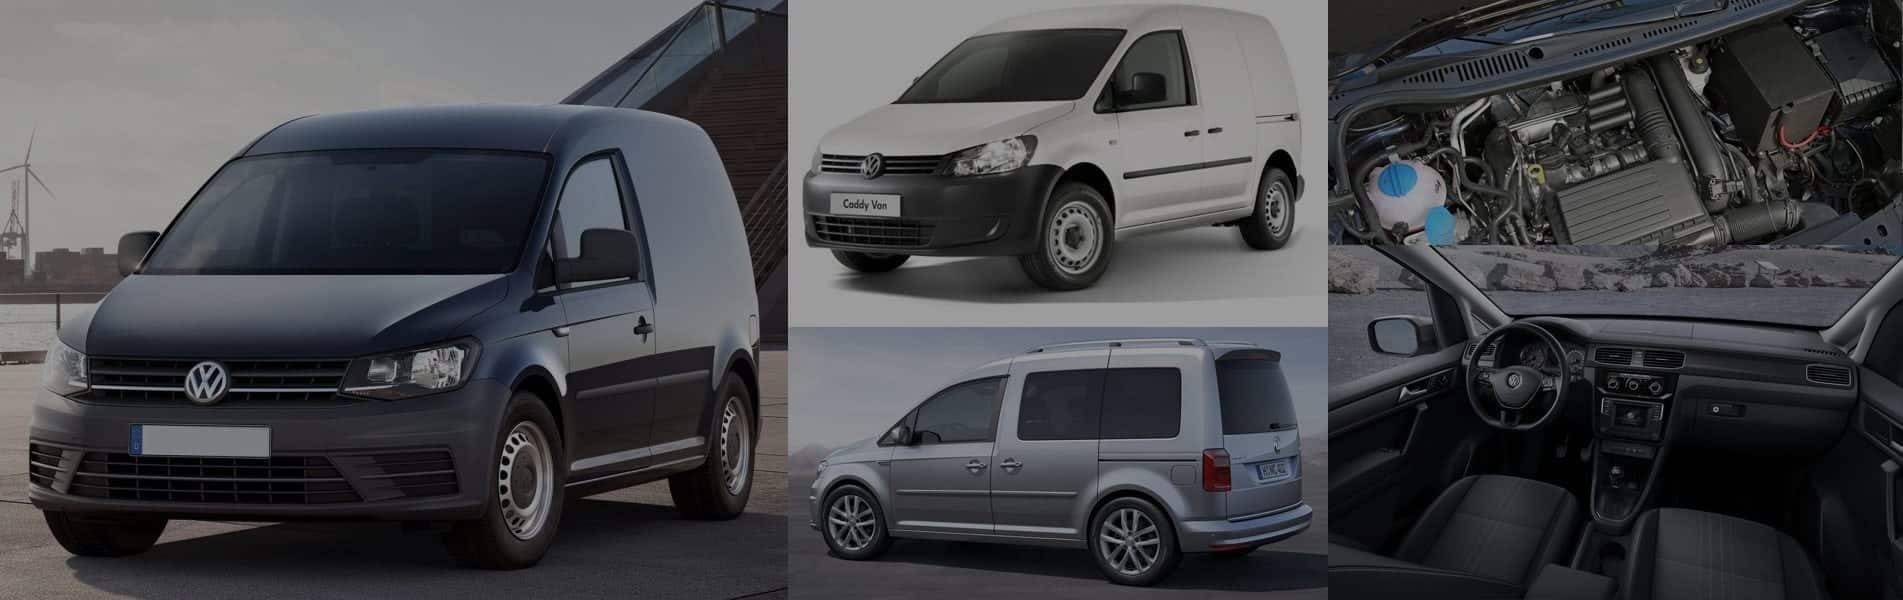 volkswagen caddy large uk vw stock available. Black Bedroom Furniture Sets. Home Design Ideas